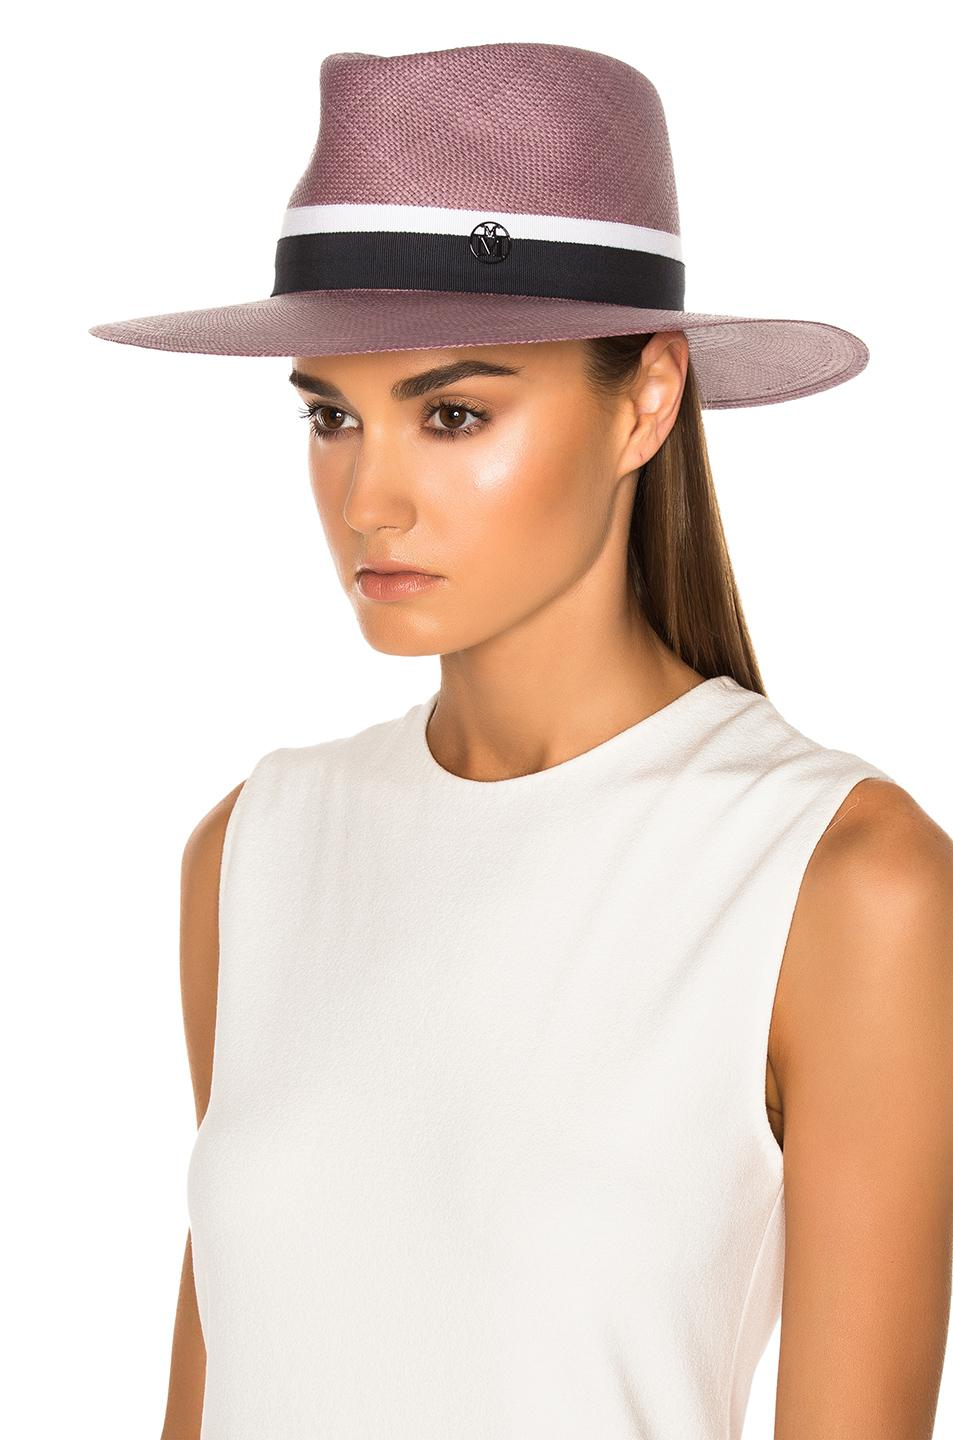 Lyst - Maison Michel Charles Hat In Antic Pink in Pink d57234636ee